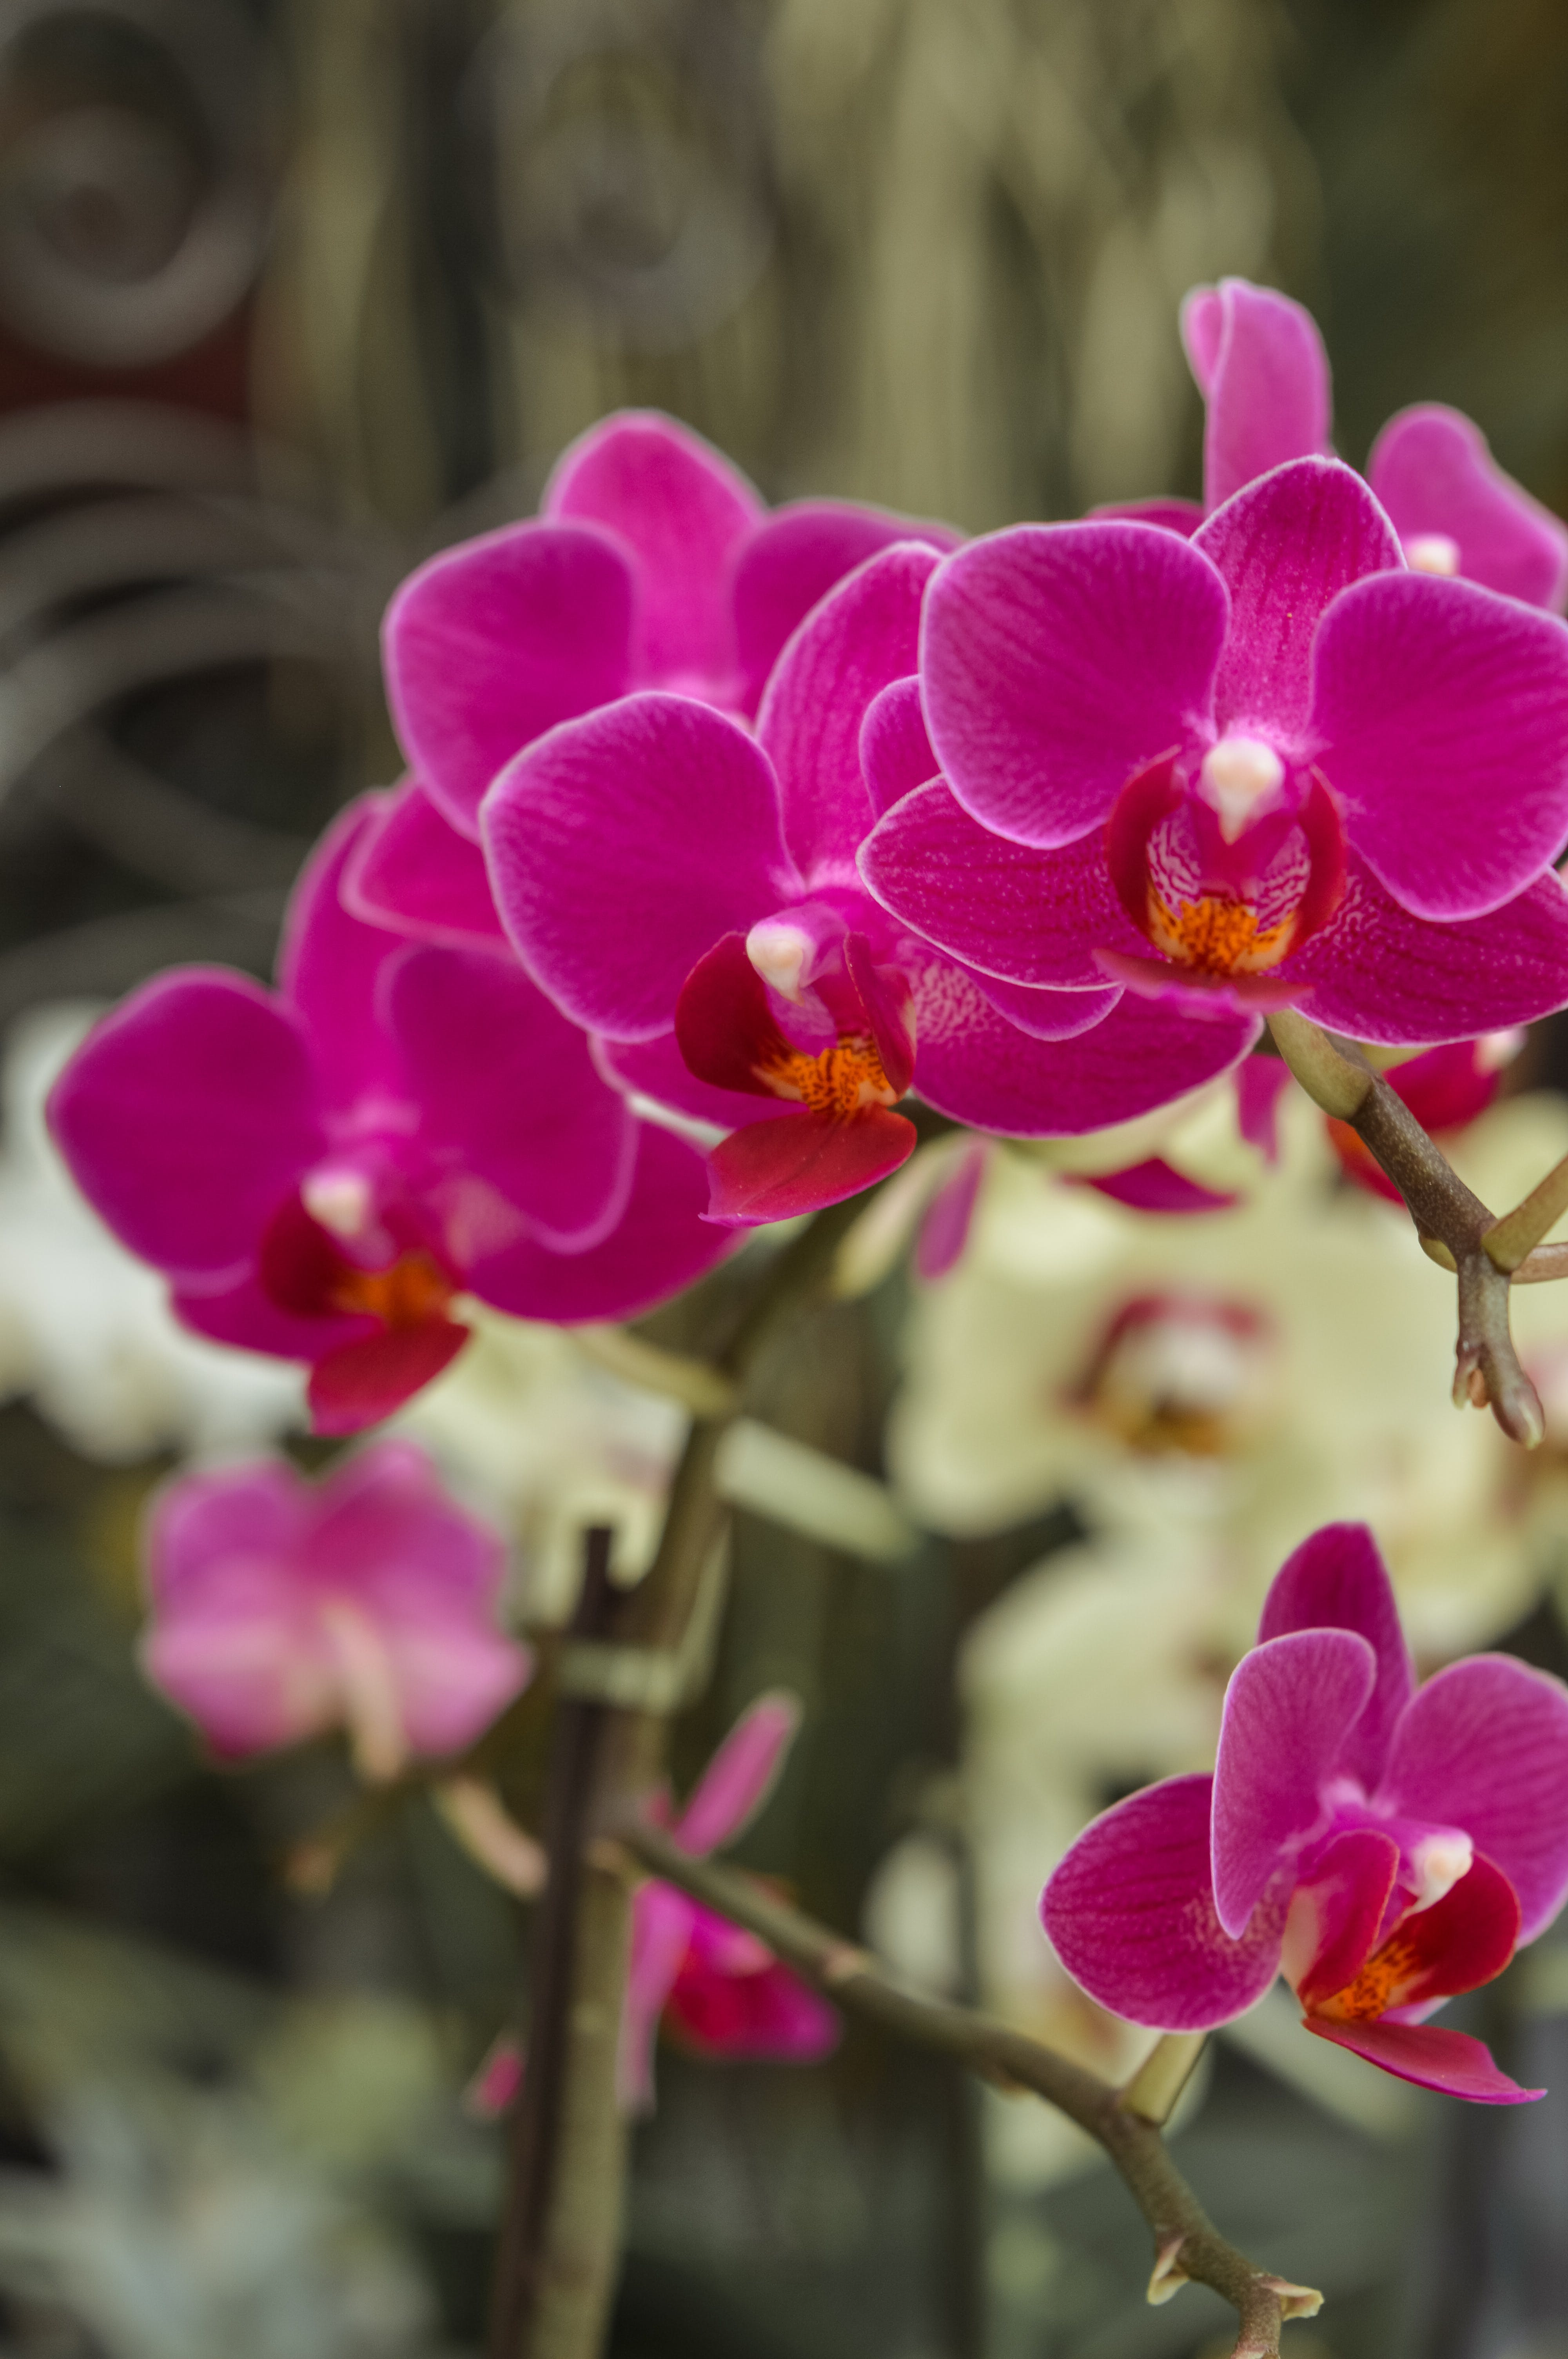 Free stock photo of beautiful flowers, flowers, orchid, orchids